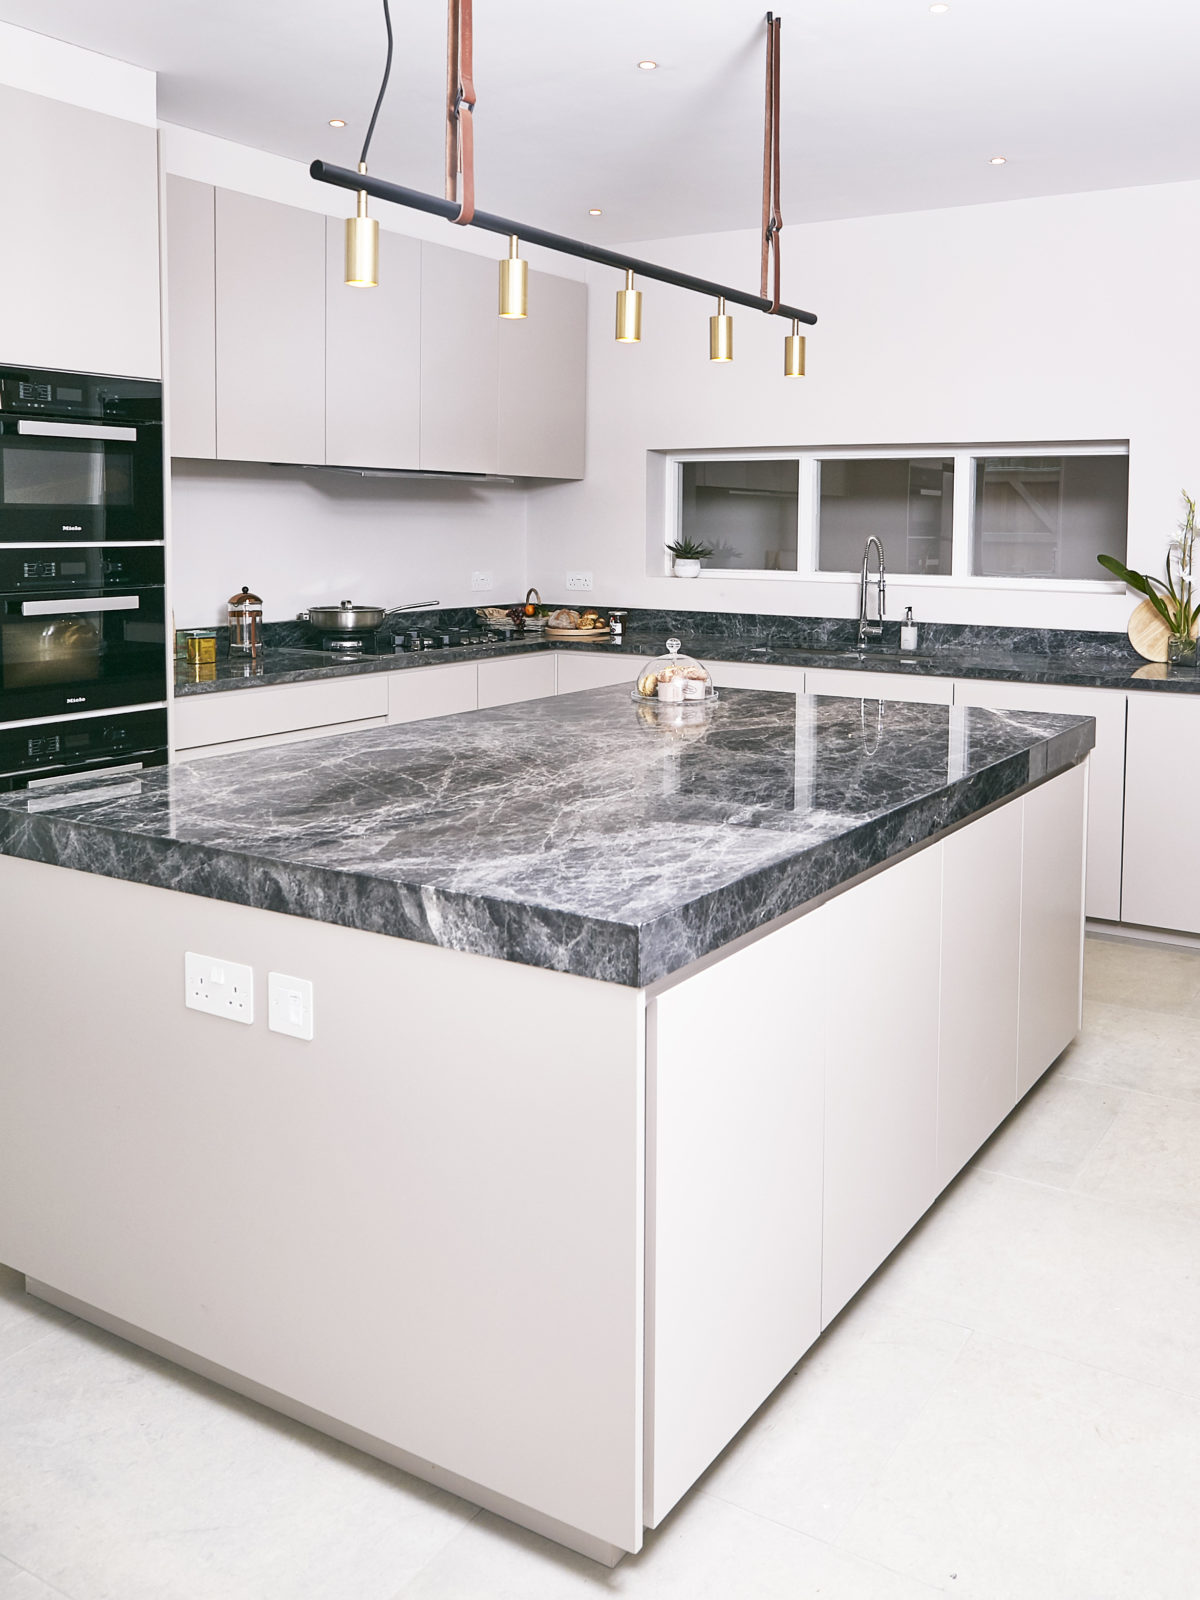 Matt lacquered kitchen island with thick Savana grey marble worktop